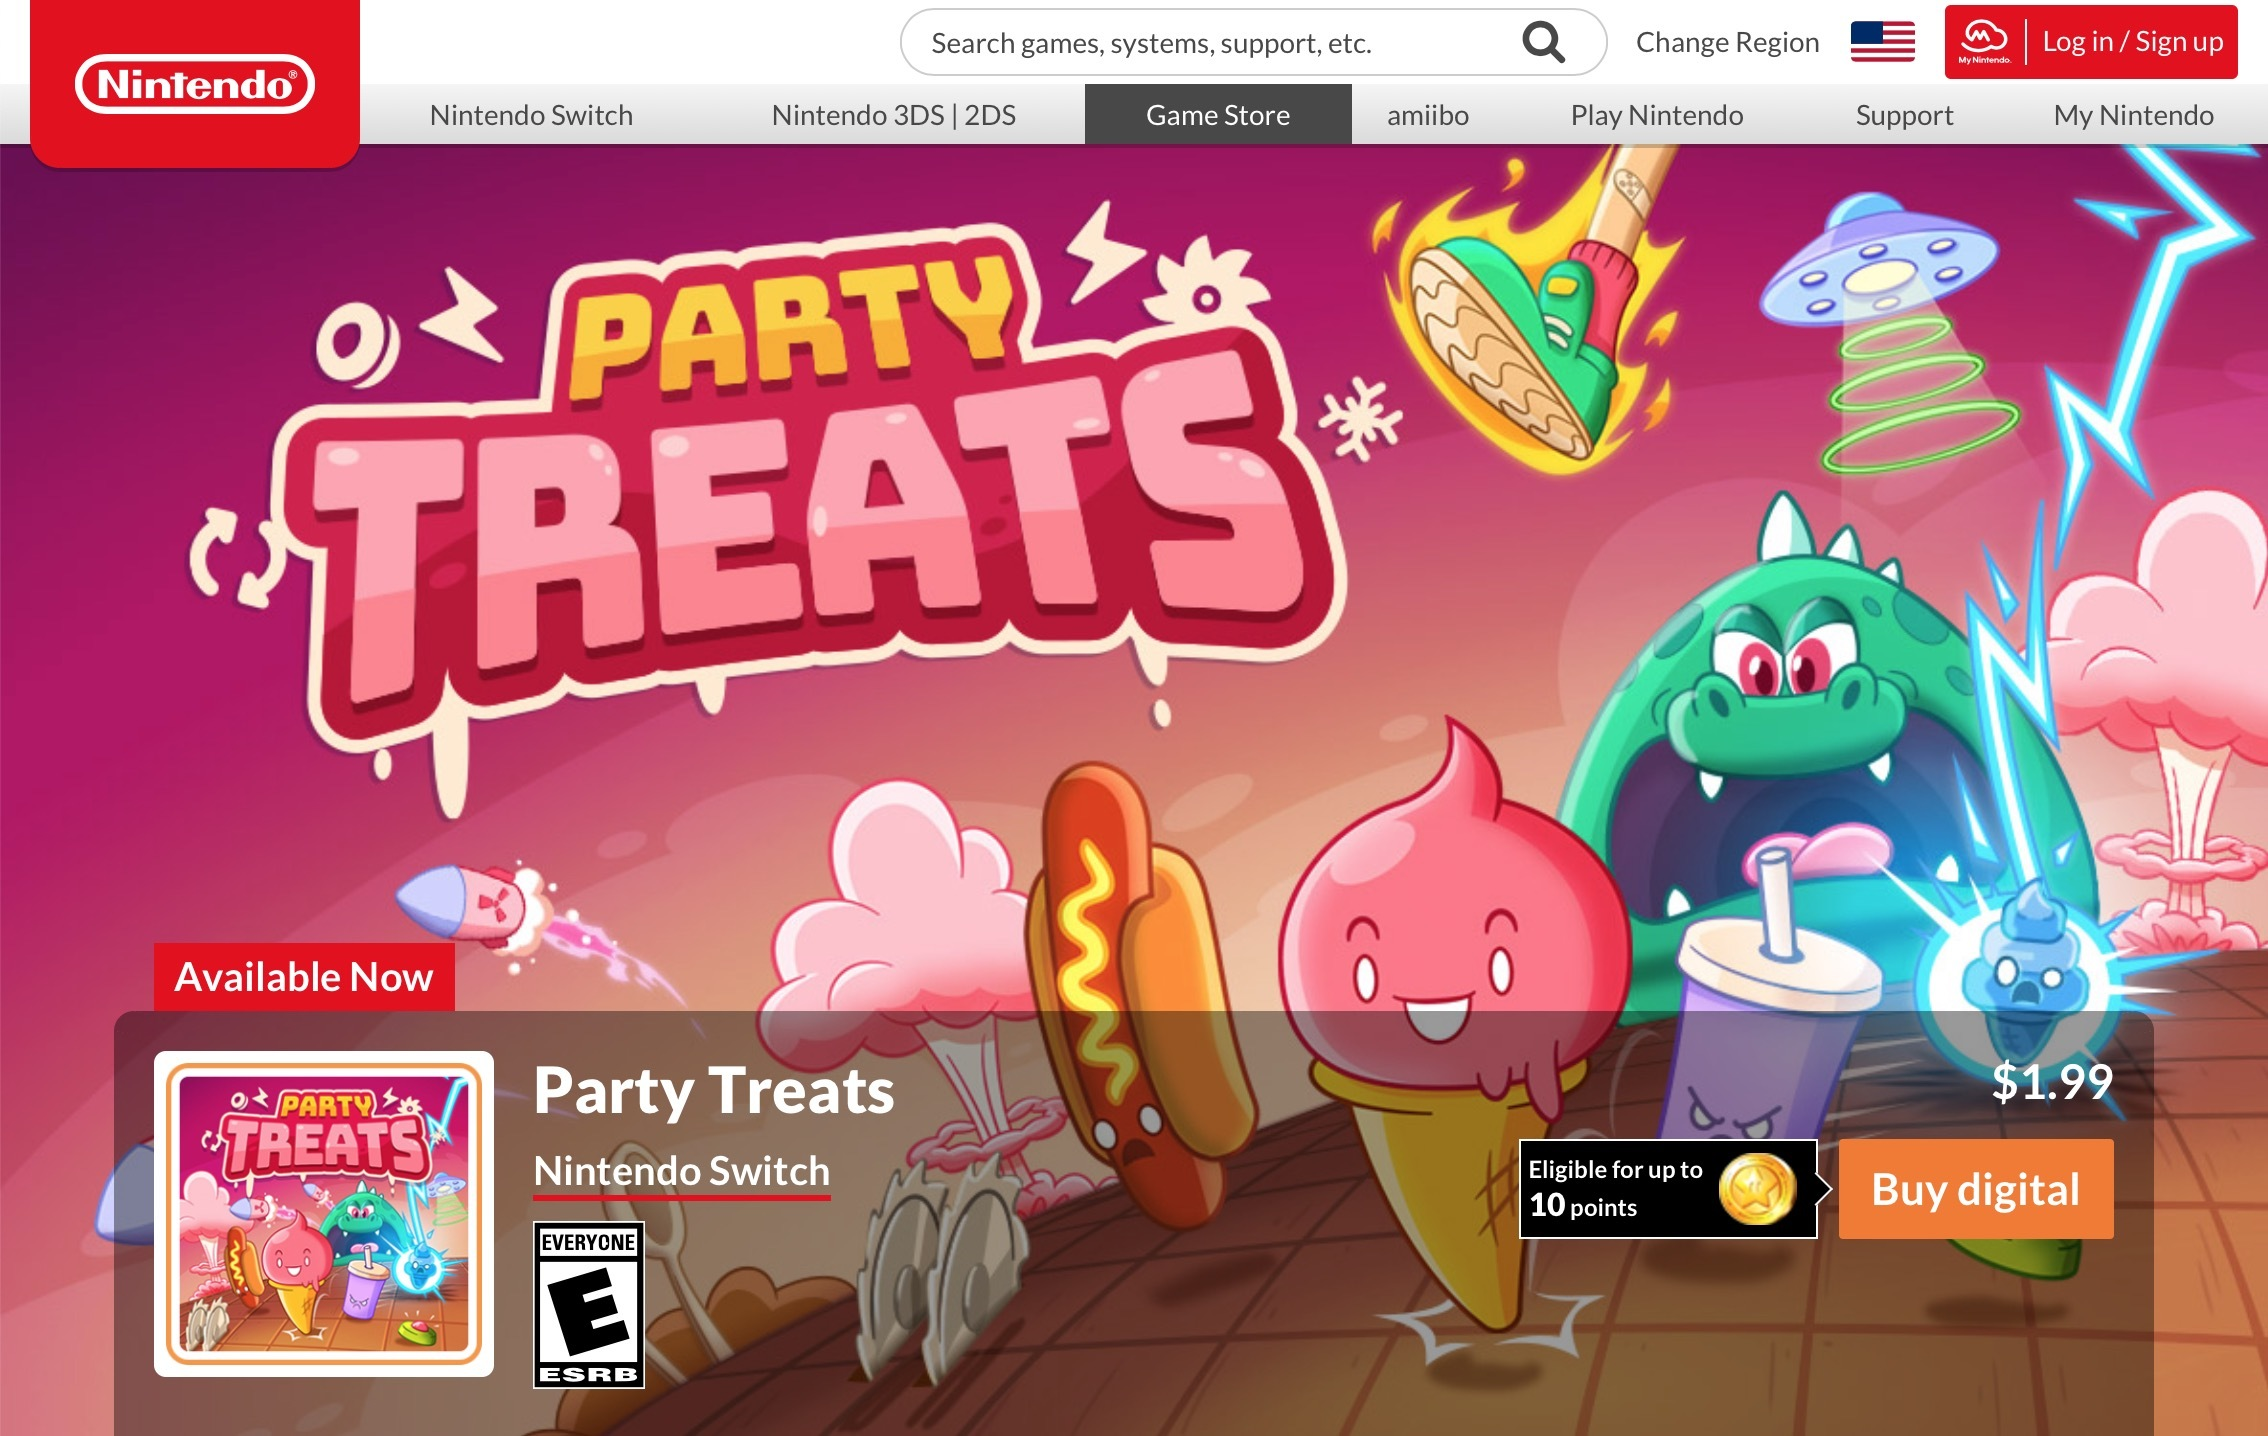 Party Treats is available now on Nintendo Switch!